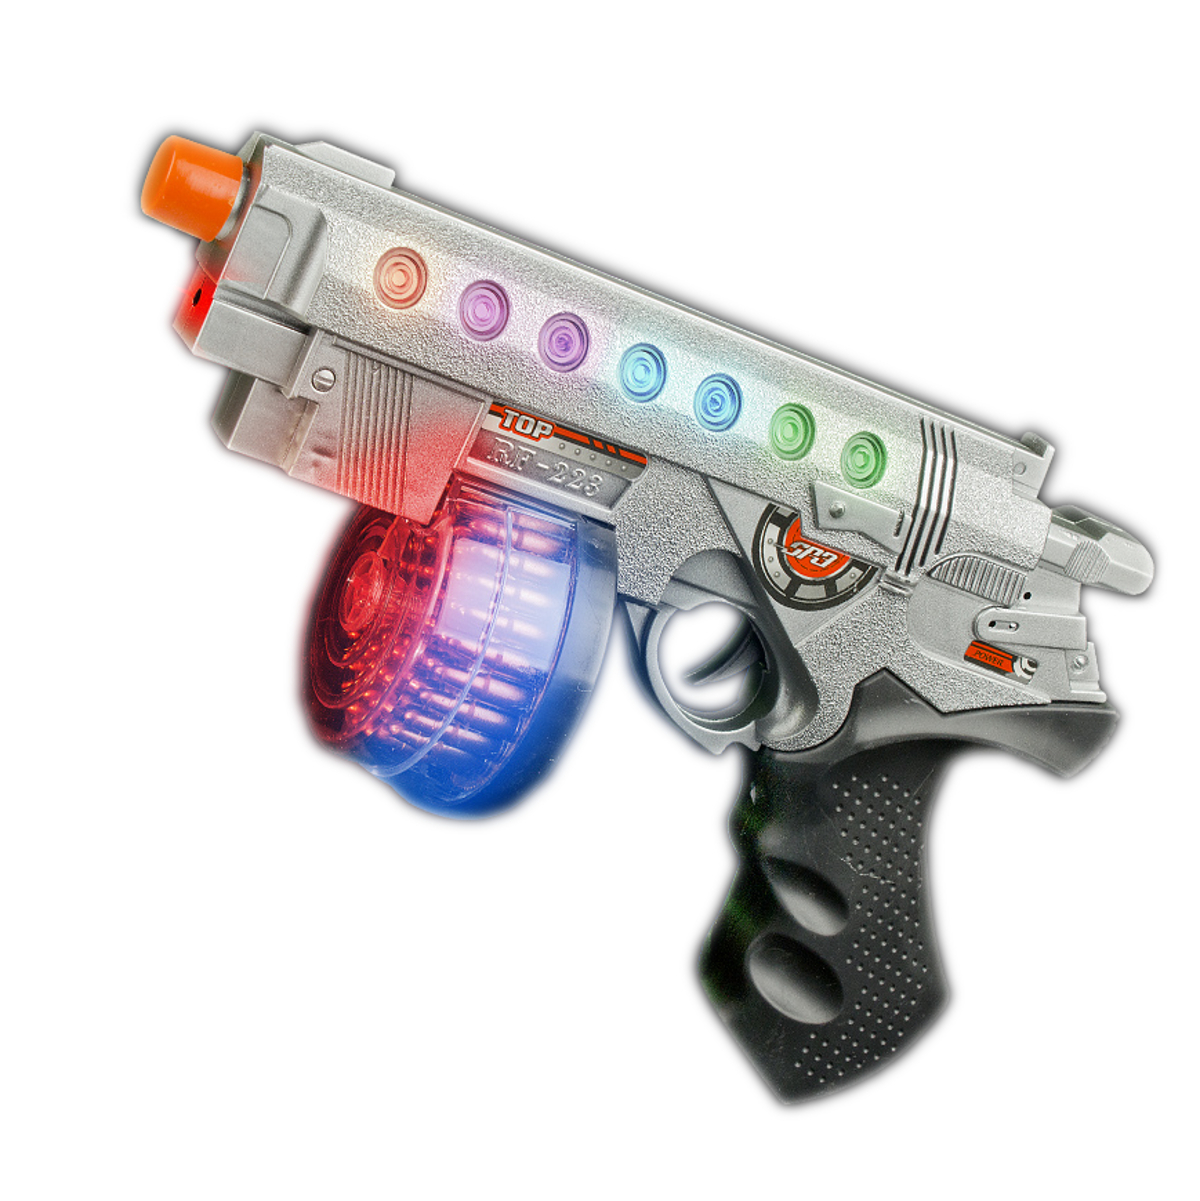 LED Red Laser Toy Hand Gun All Products